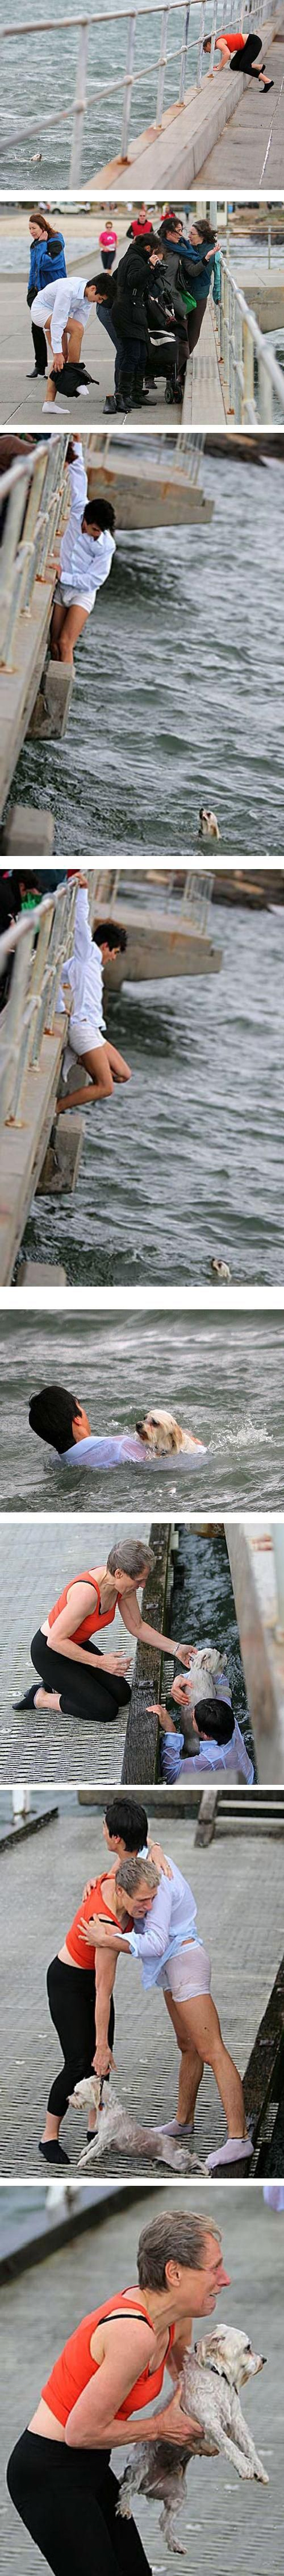 Faith in humanity - it that will not bring tears to your eyes....